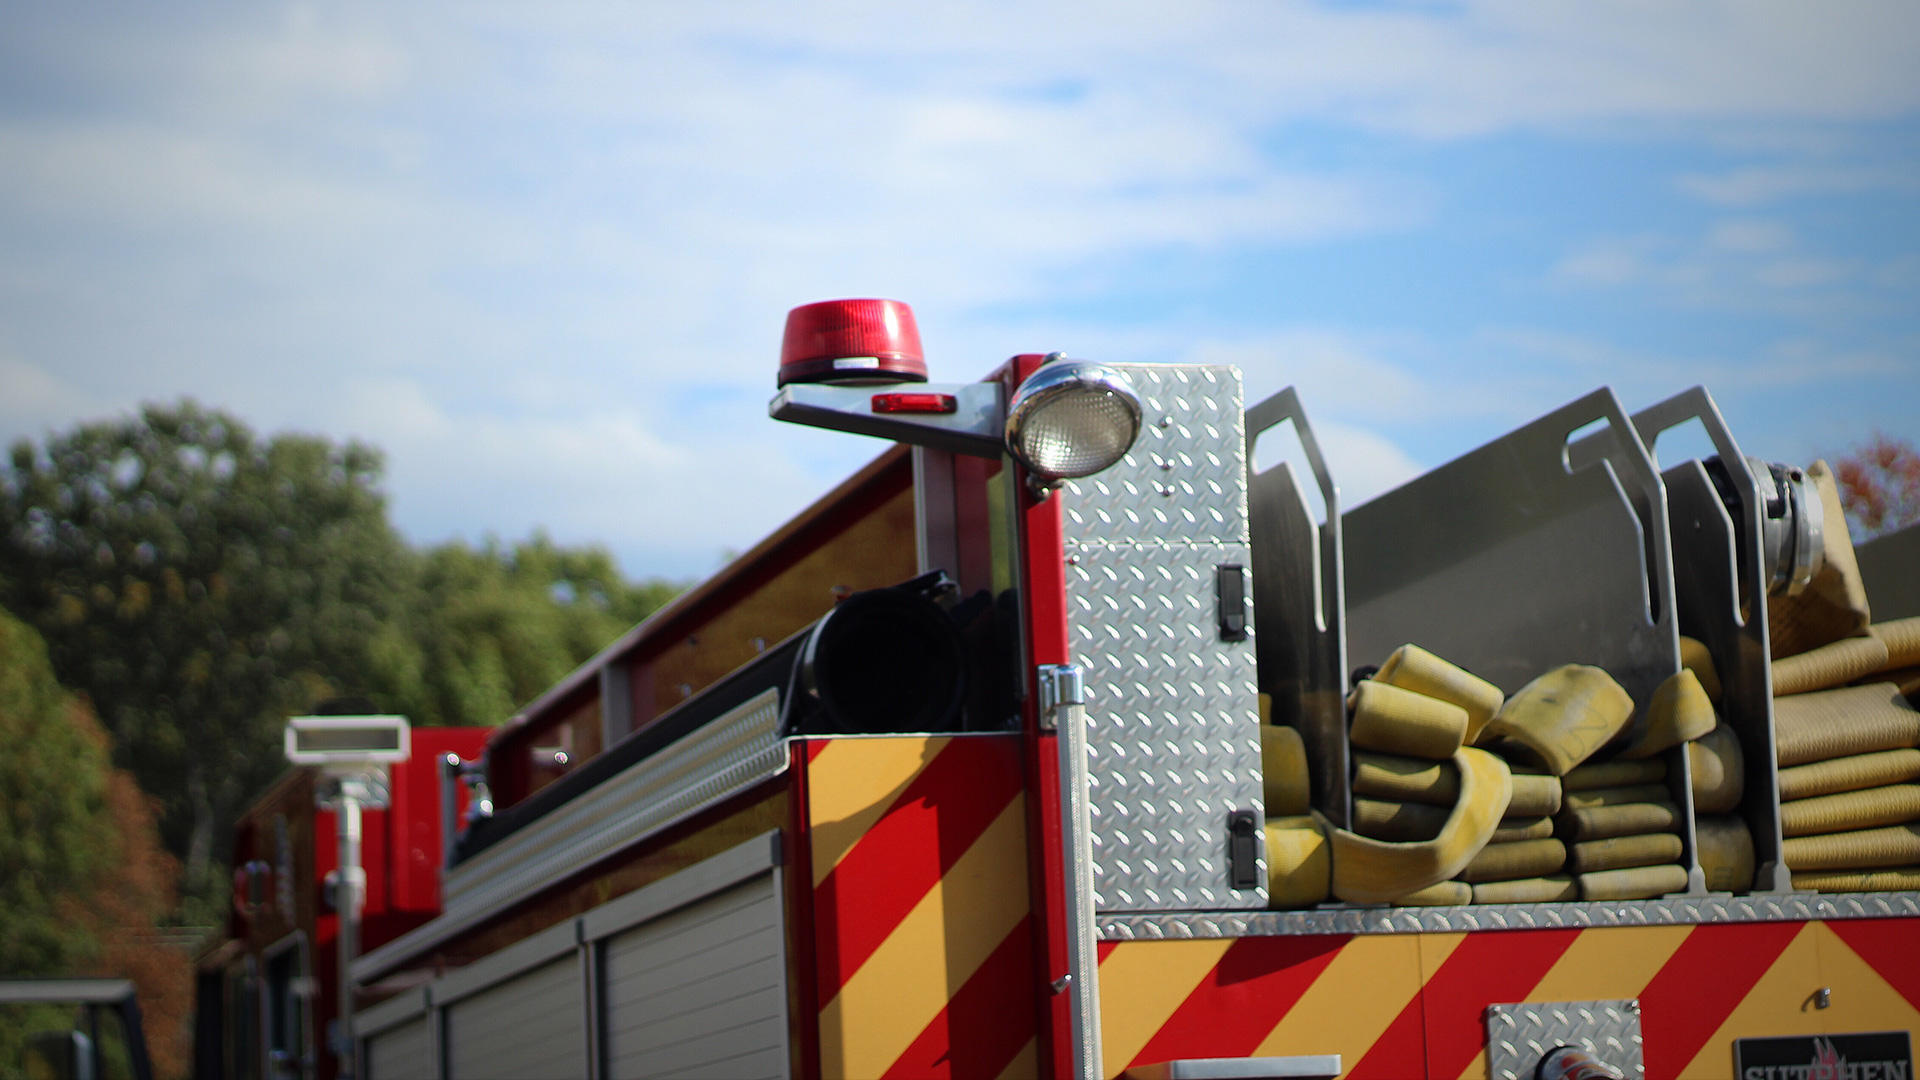 Fire reported at Samson United Church in Maskwacis First Nation, Alberta